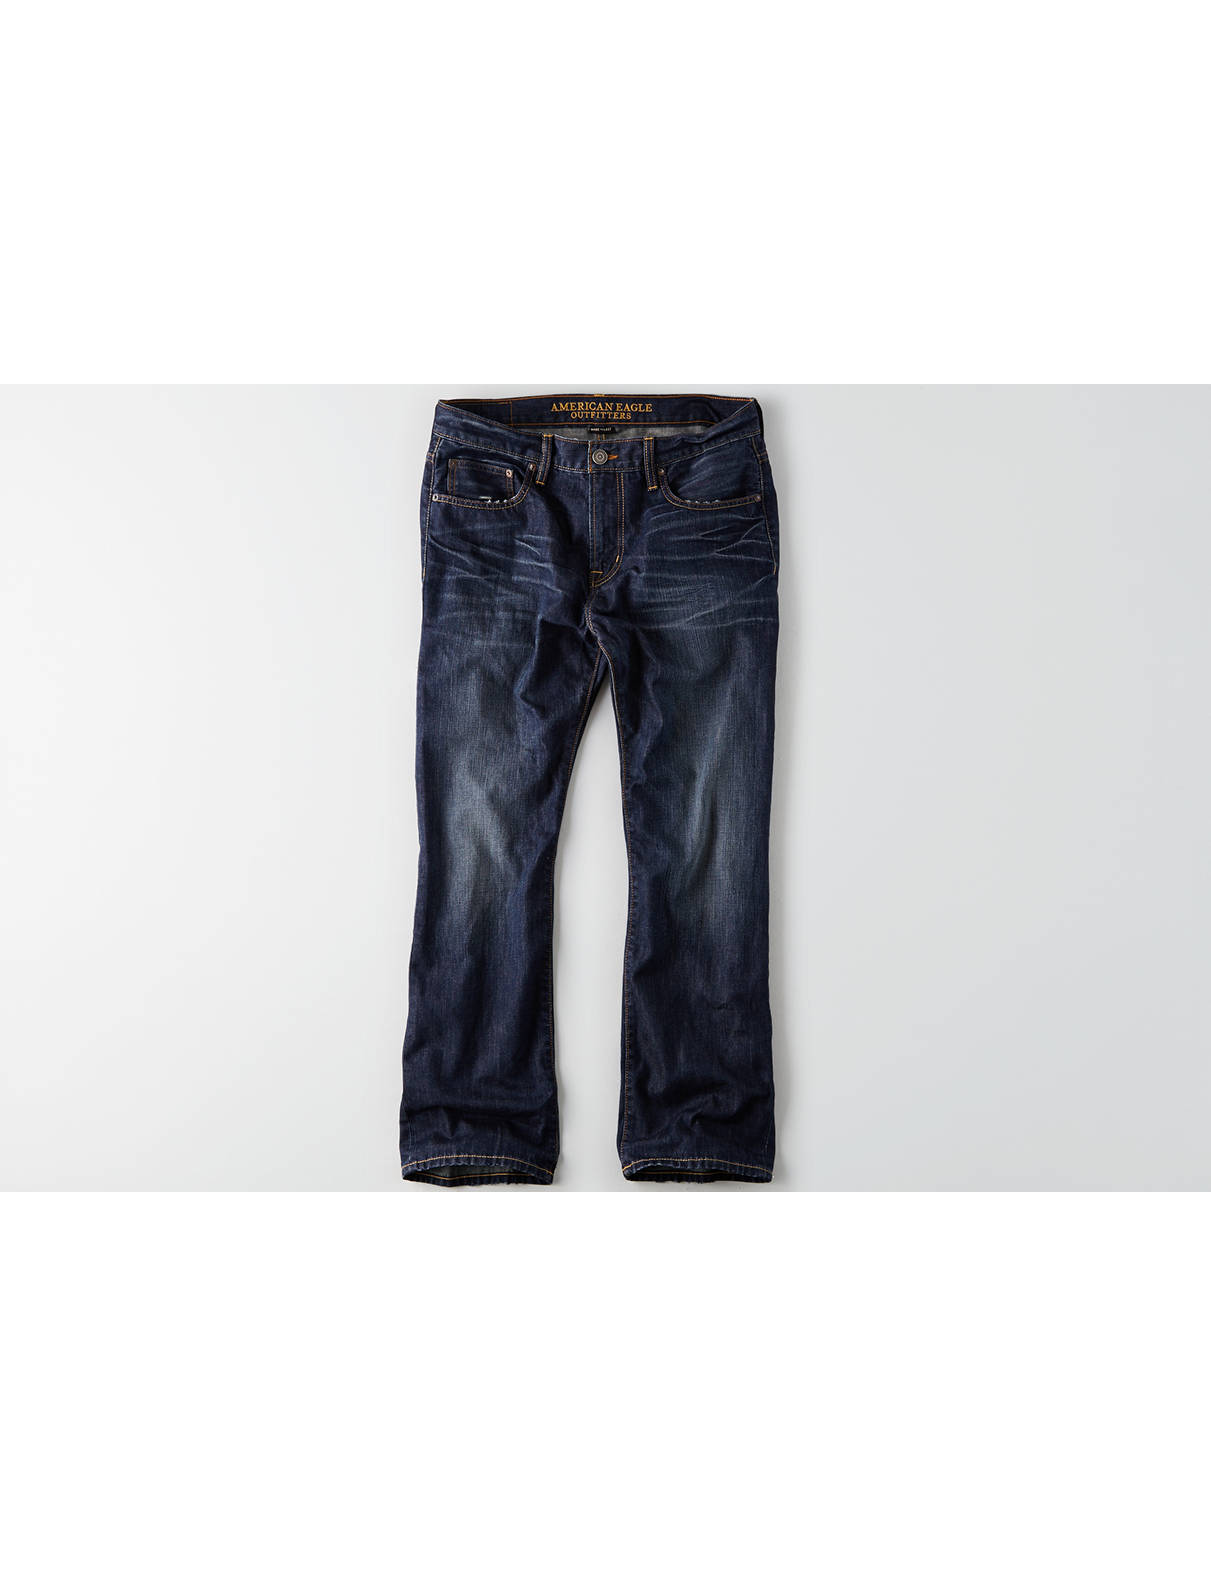 Coupon codes for texas jeans - Display Product Reviews For Ae Classic Bootcut Jean